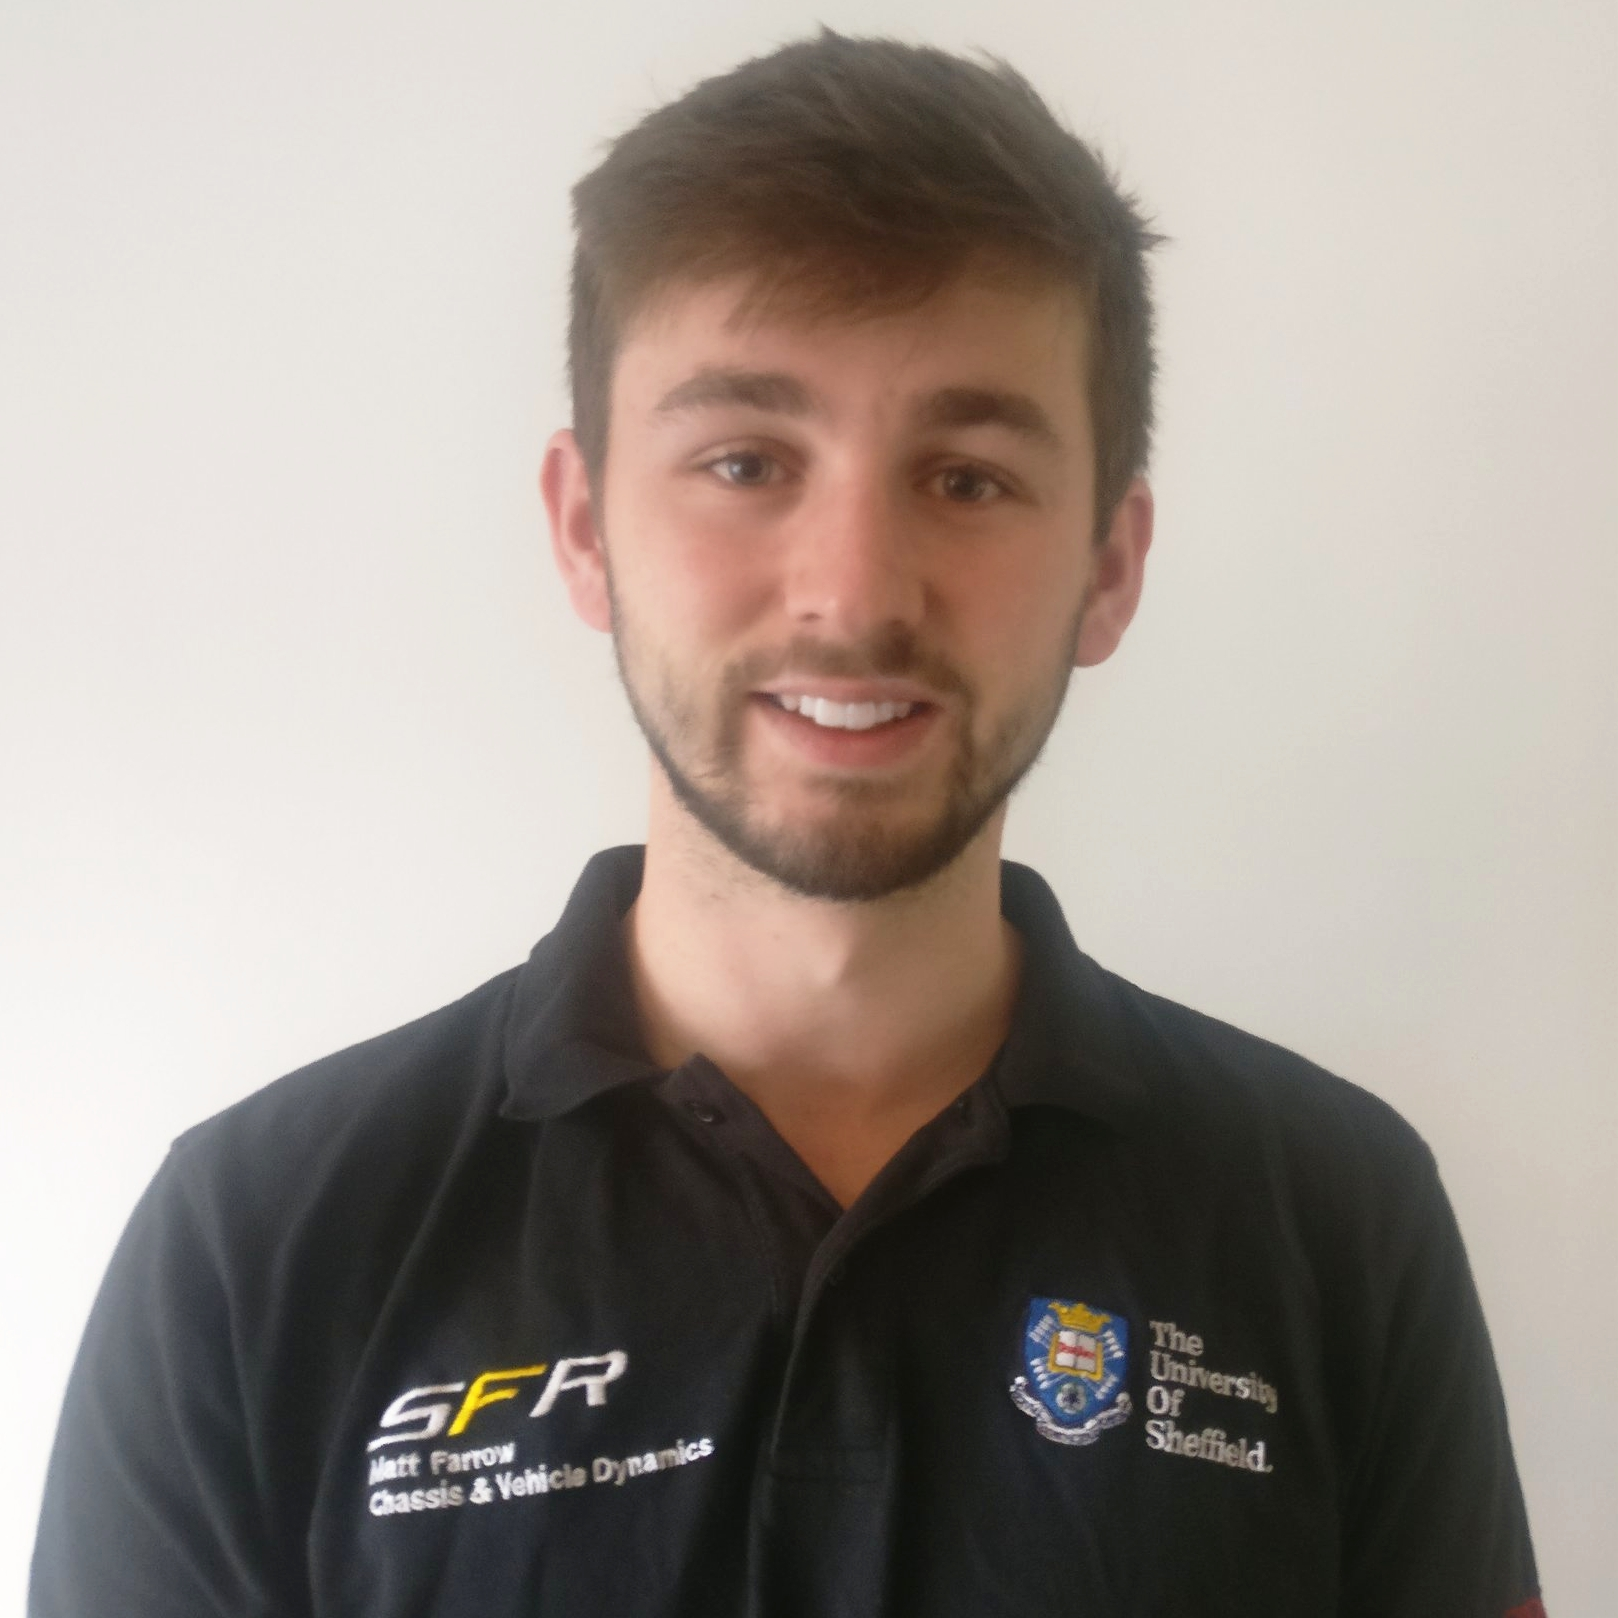 "matt farrow  year: 2  course: mechanical engineering  ""I am looking forwards to my second year on the team where I will be working on the aerodynamics sub-team. Outside of Formula Student I enjoy participating in sports such as Rowing, Football and Cycling."""